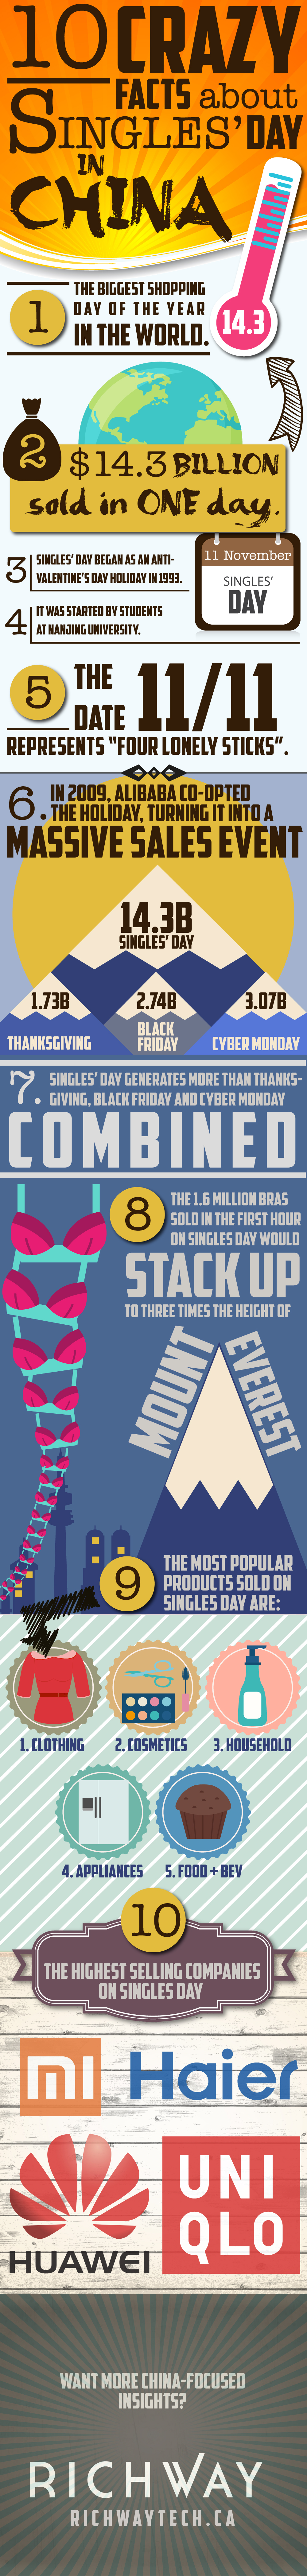 Singles' Day Infographic